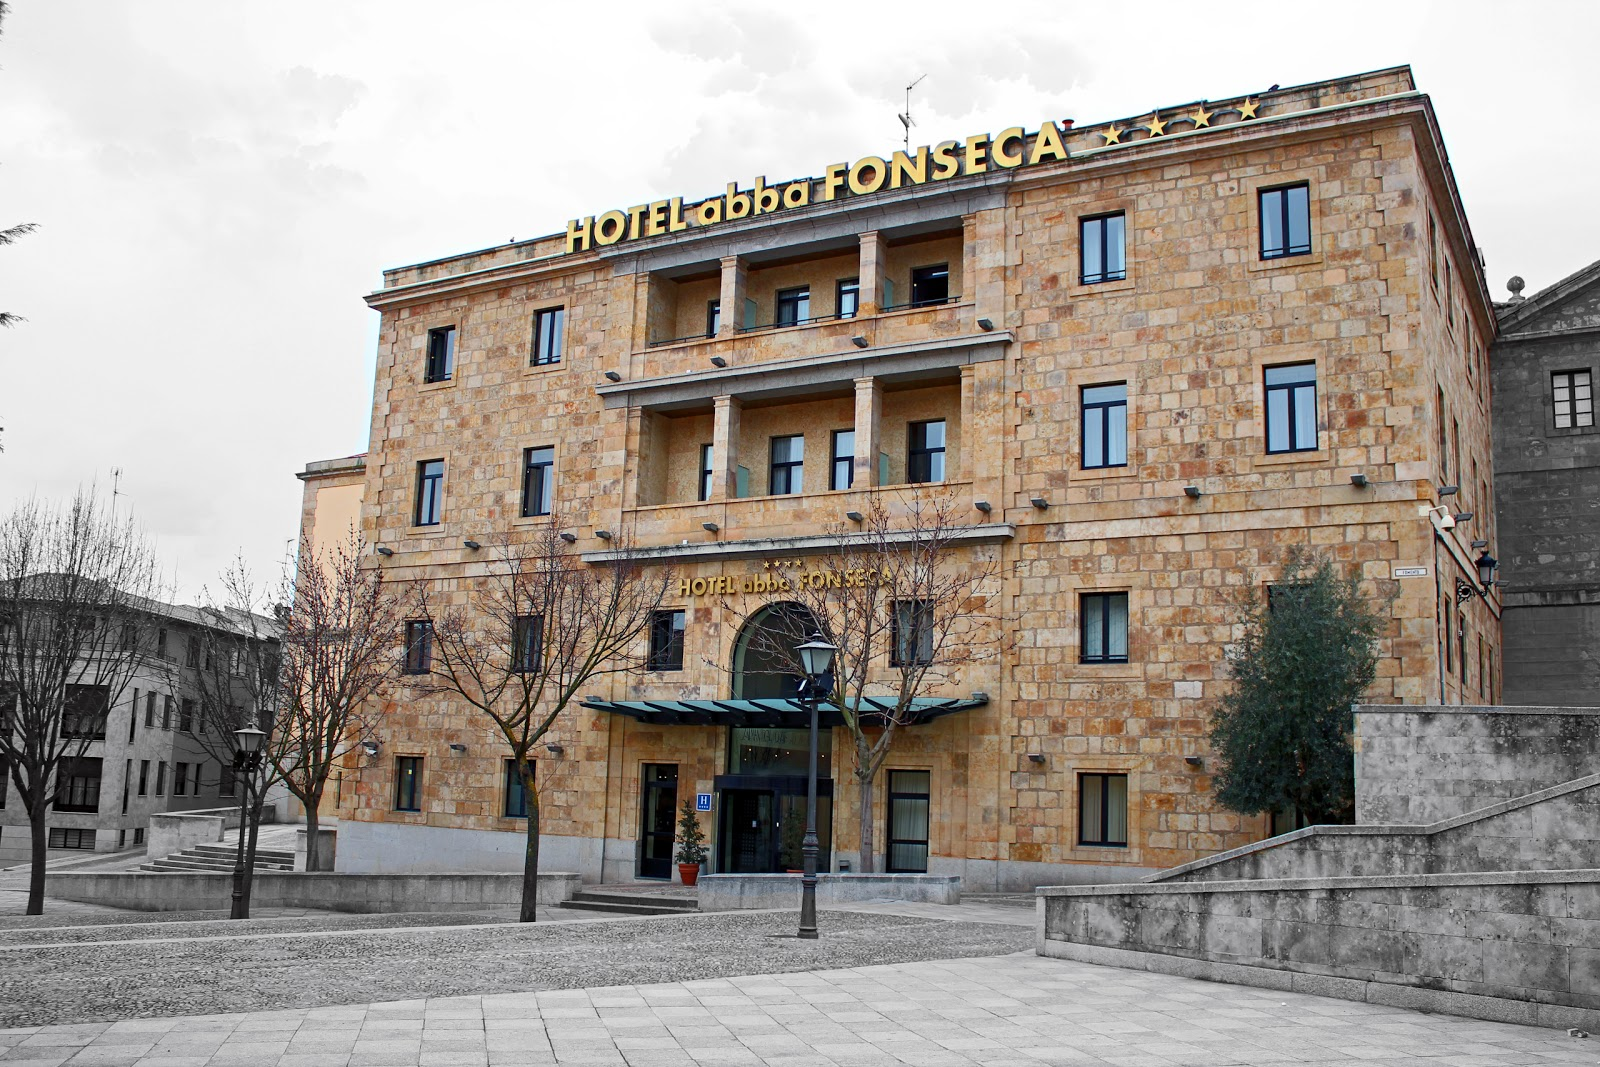 Abba Fonseca Hotel - photo